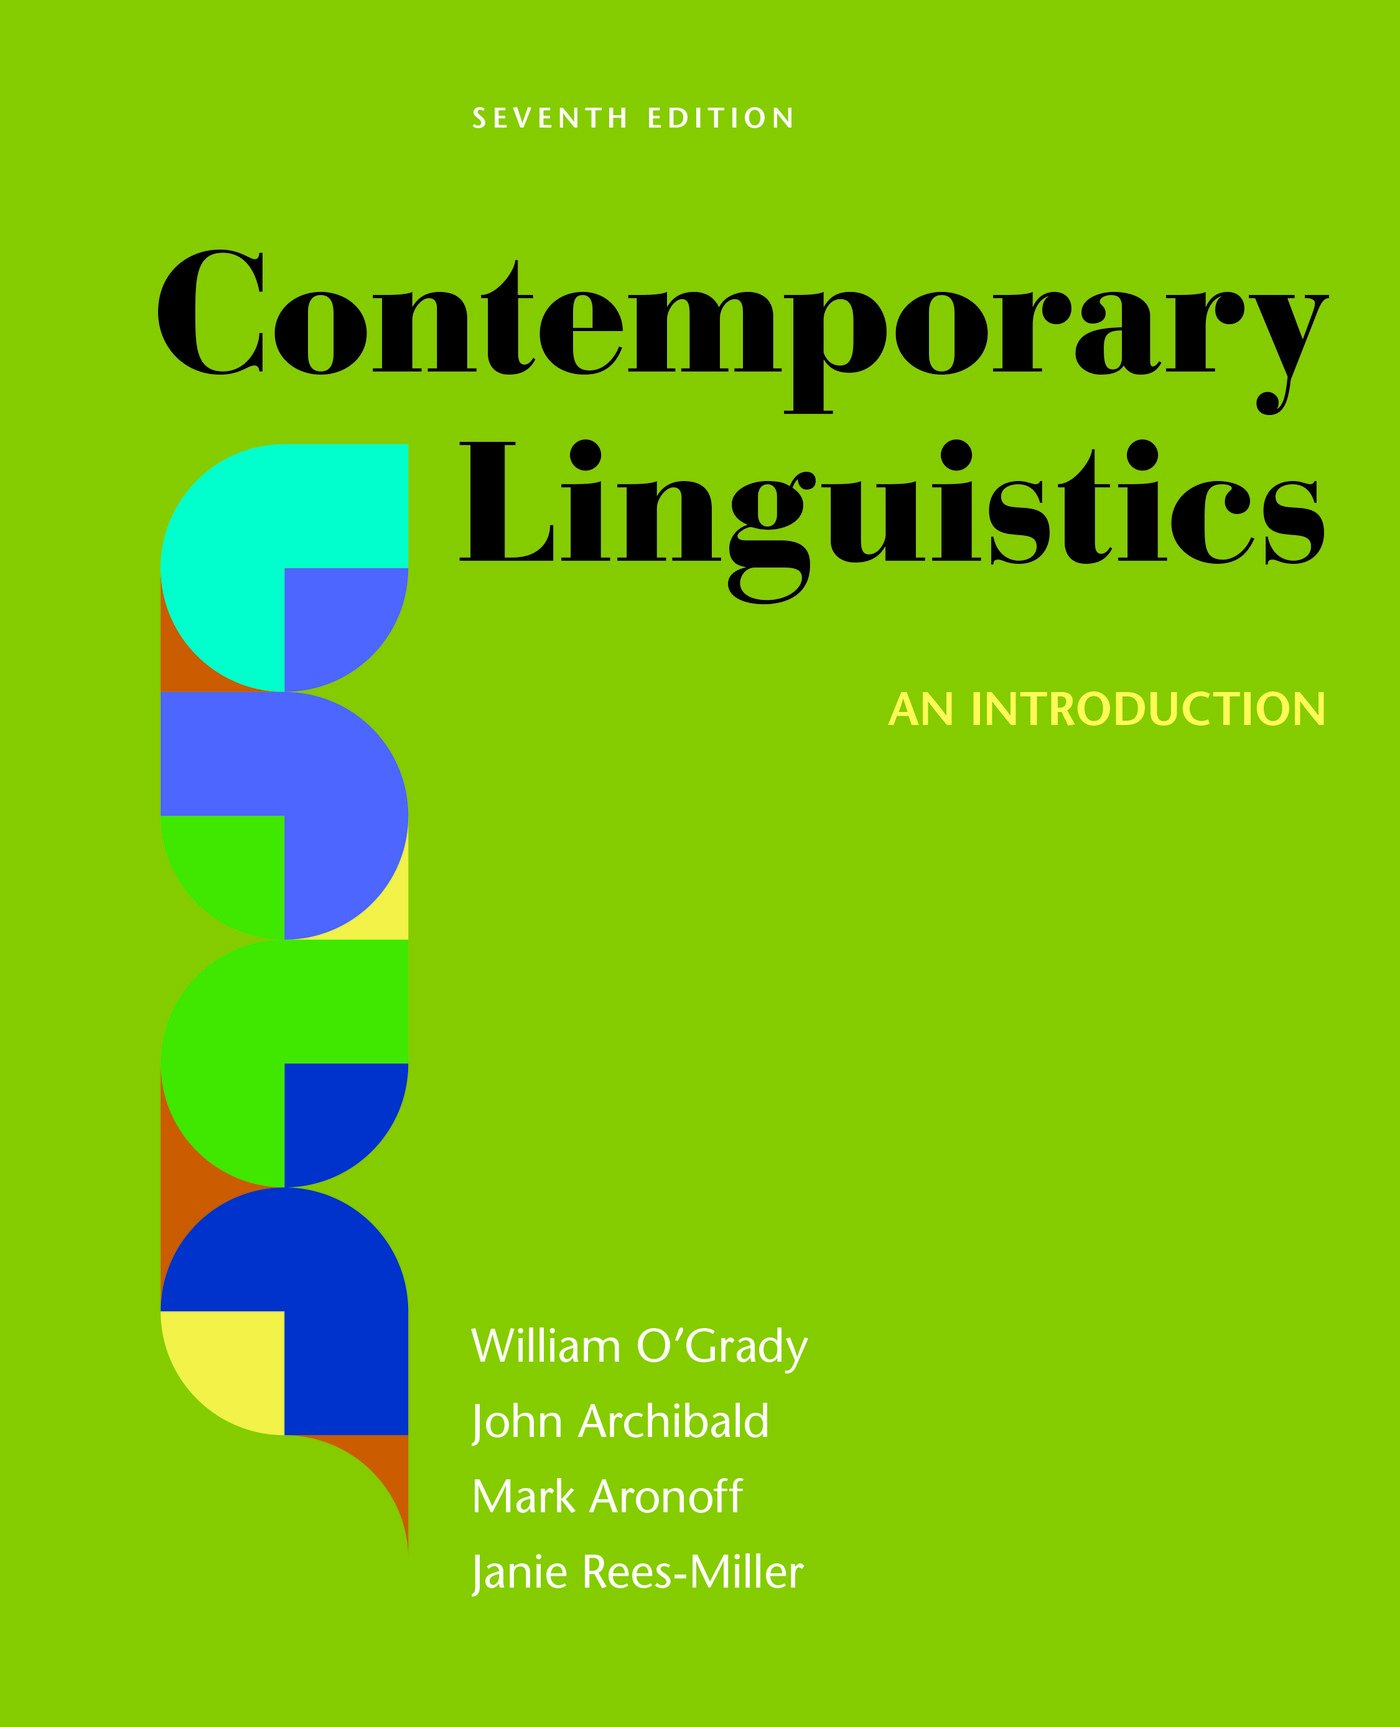 Contemporary Linguistics: An Introduction by O Grady William